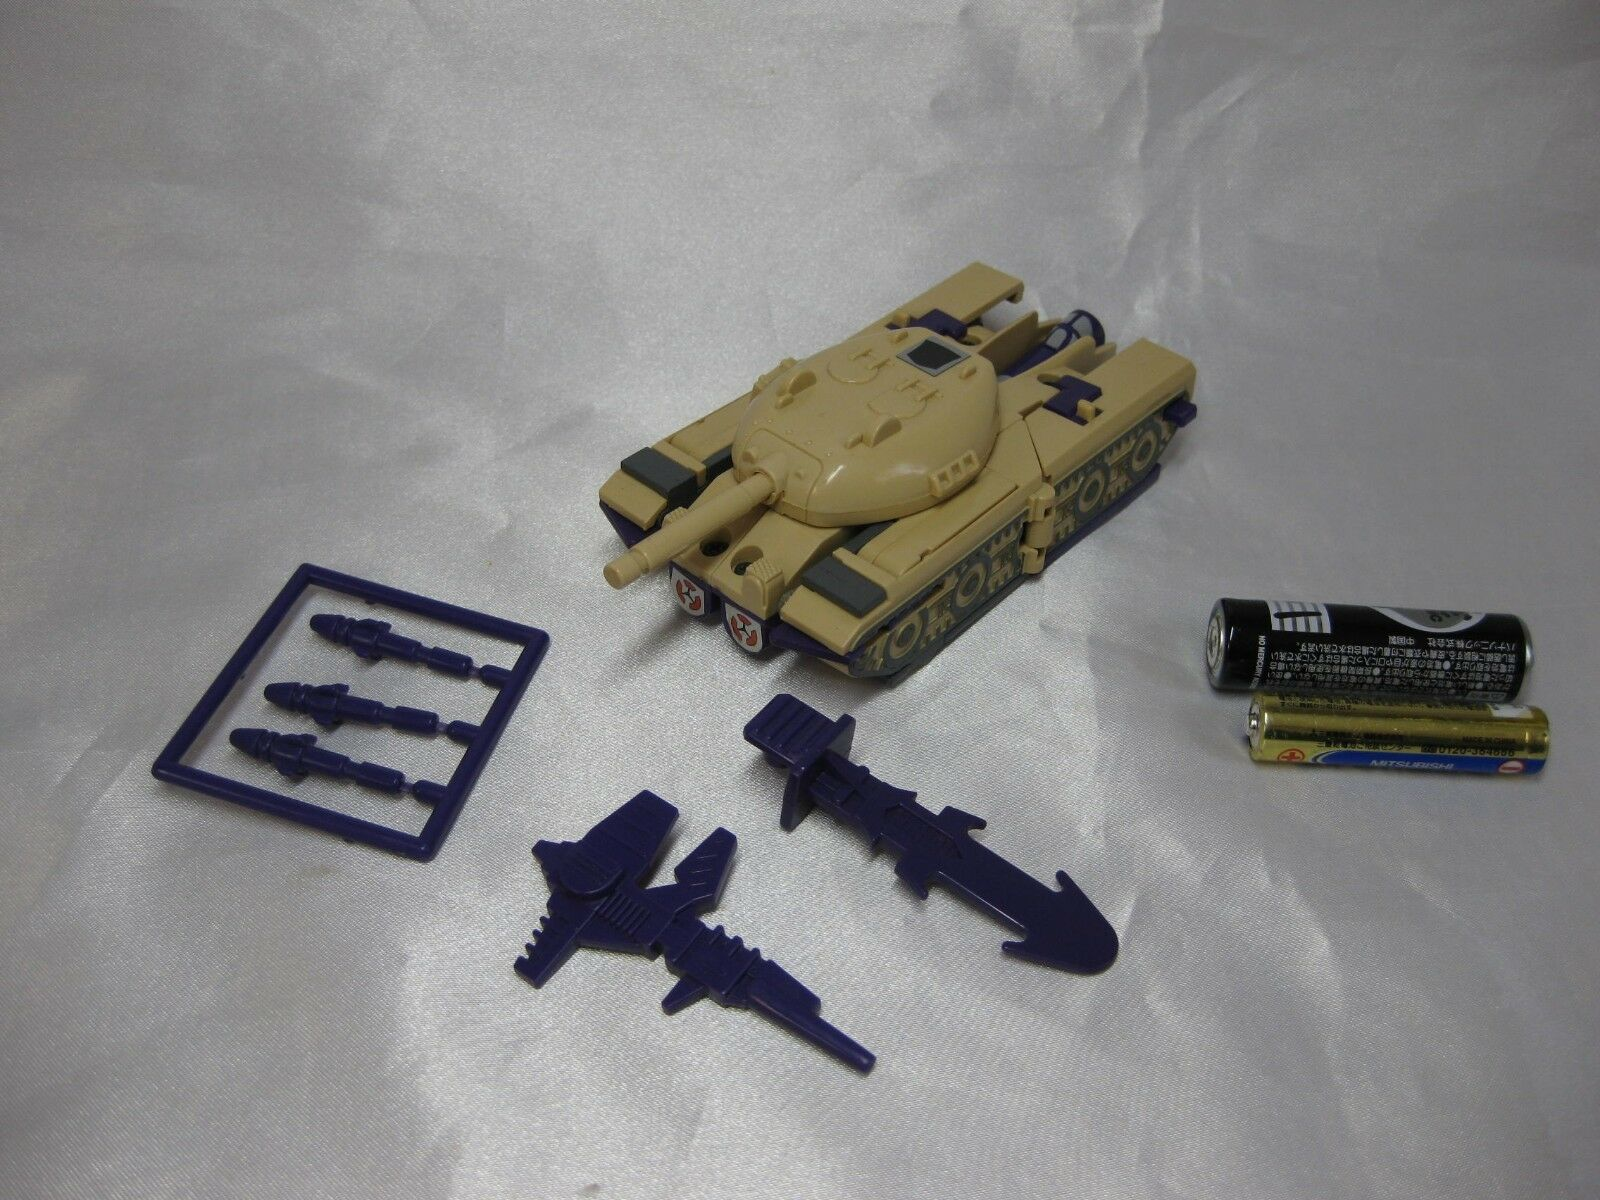 Very Rare trans formers G1 43 triple changer Blitzwing vintage 1984 from Japan